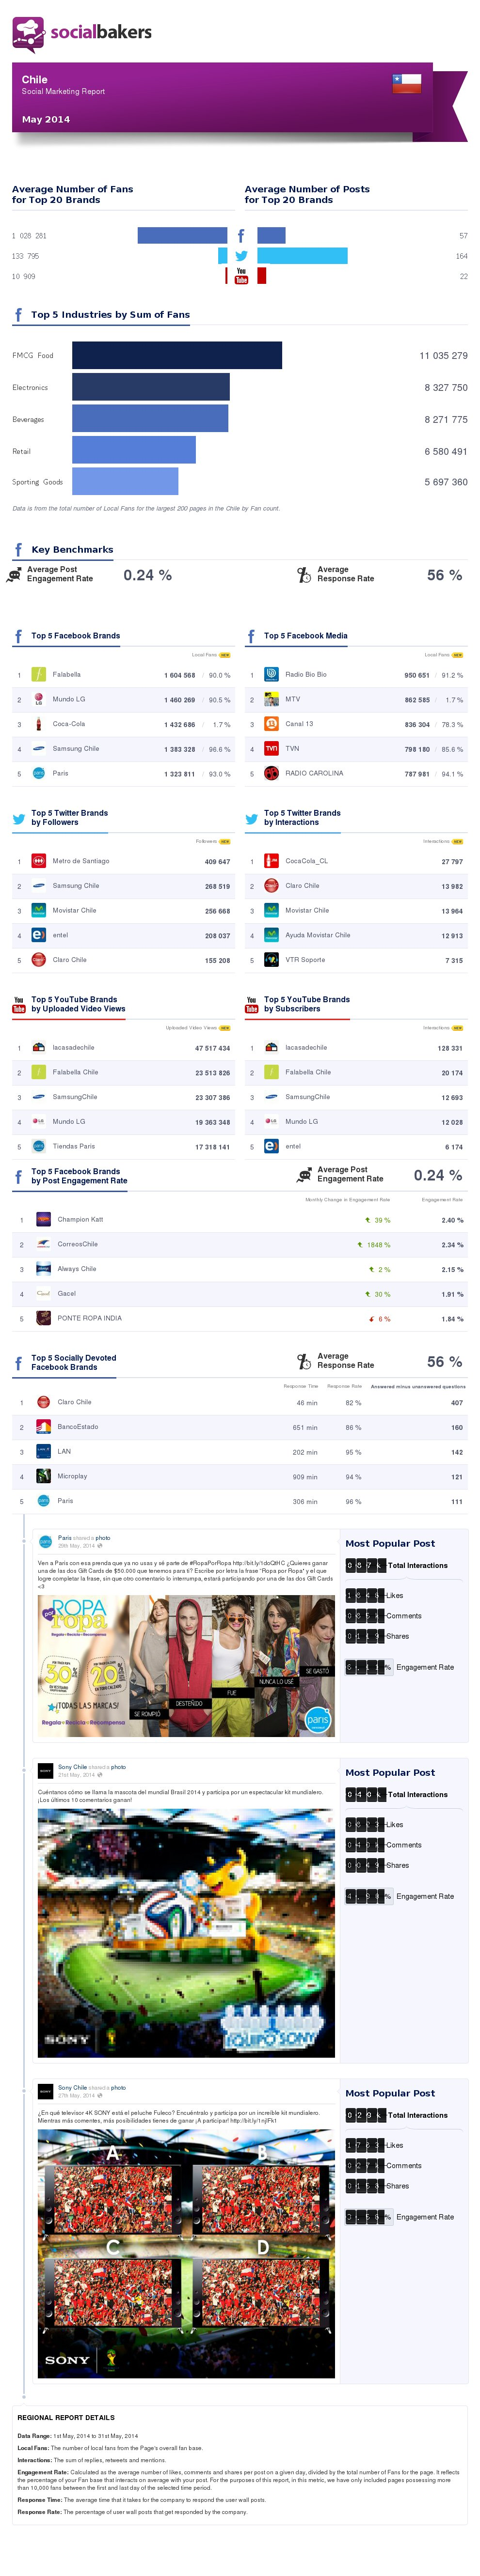 Top 5 Social Marketing Chile Mayo 2014